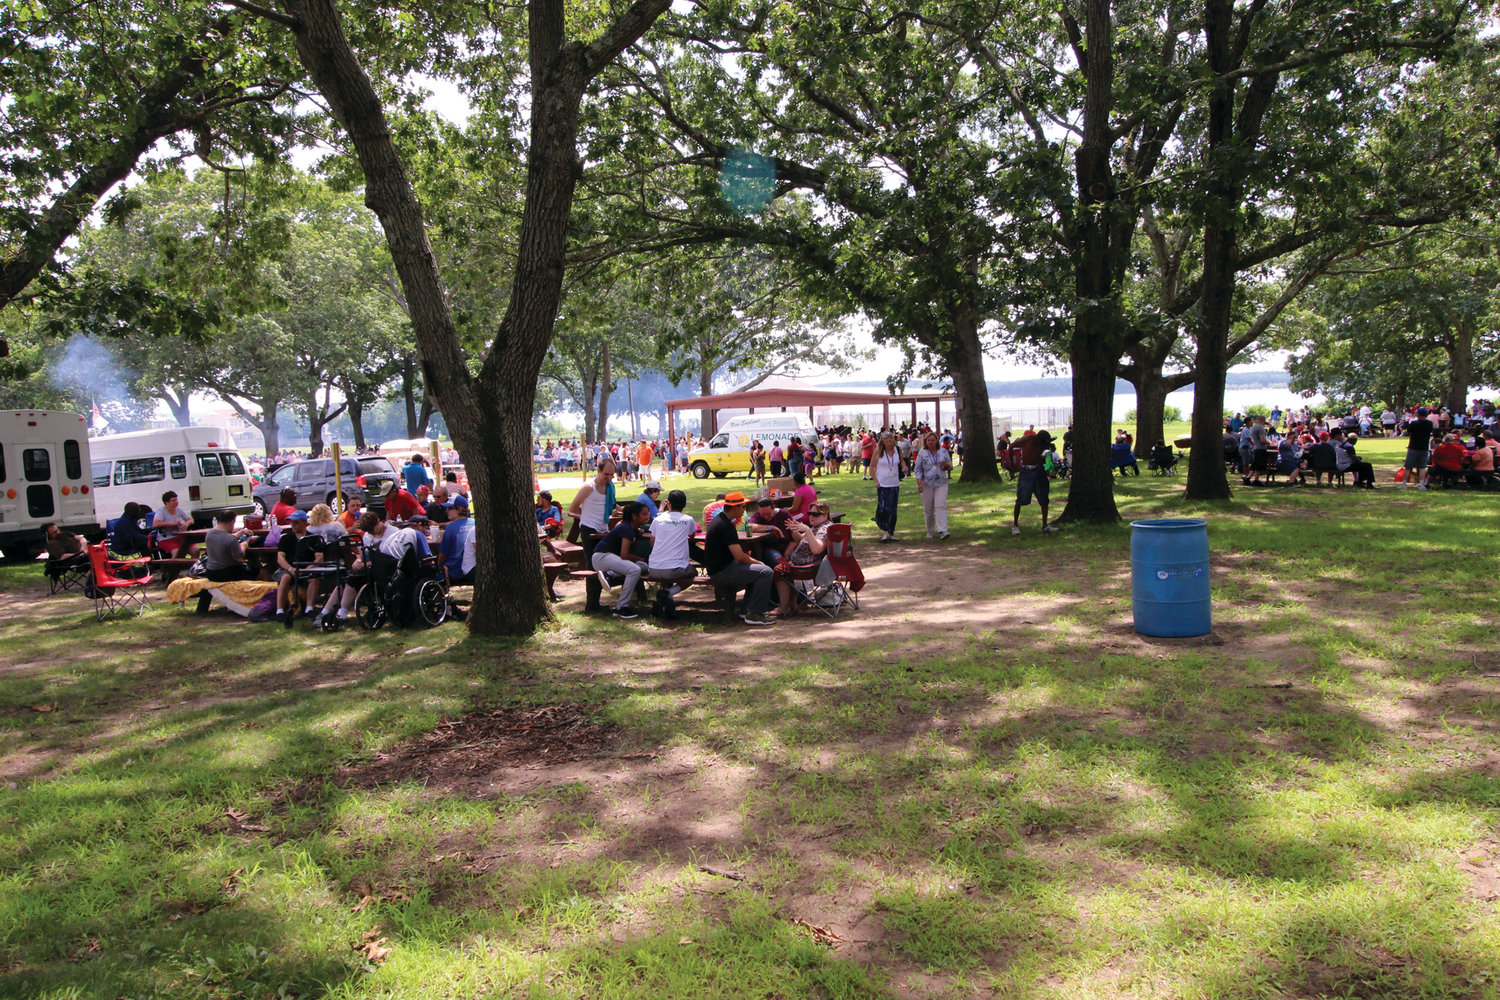 NOW THAT'S A PICNIC:  An estimated 1,800 people turned out to a picnic outing for special needs citizens hosted by the Elks Thursday at the Masonic Youth Center on Long Street. The event including music and visits from the Shriner clowns has become a seasonal favorite for many and gets larger year by year.